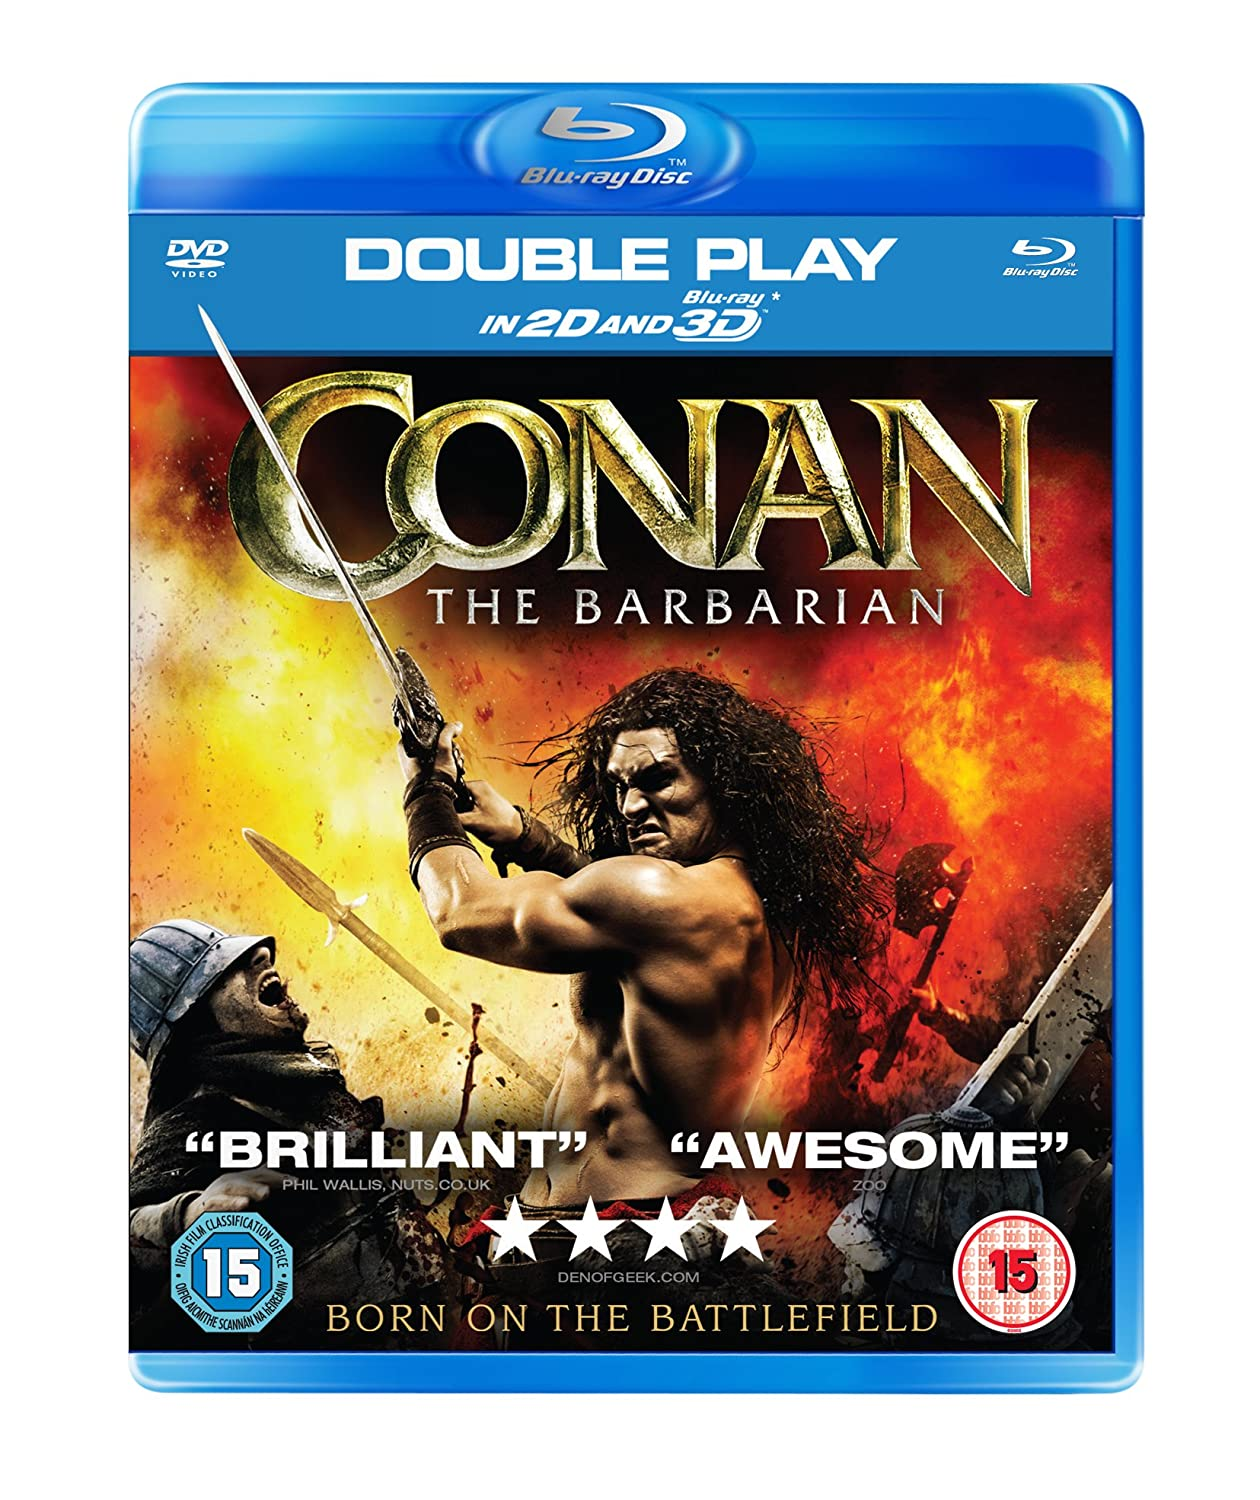 REVIEW: CONAN THE BARBARIAN (2011) | kevinfoyle